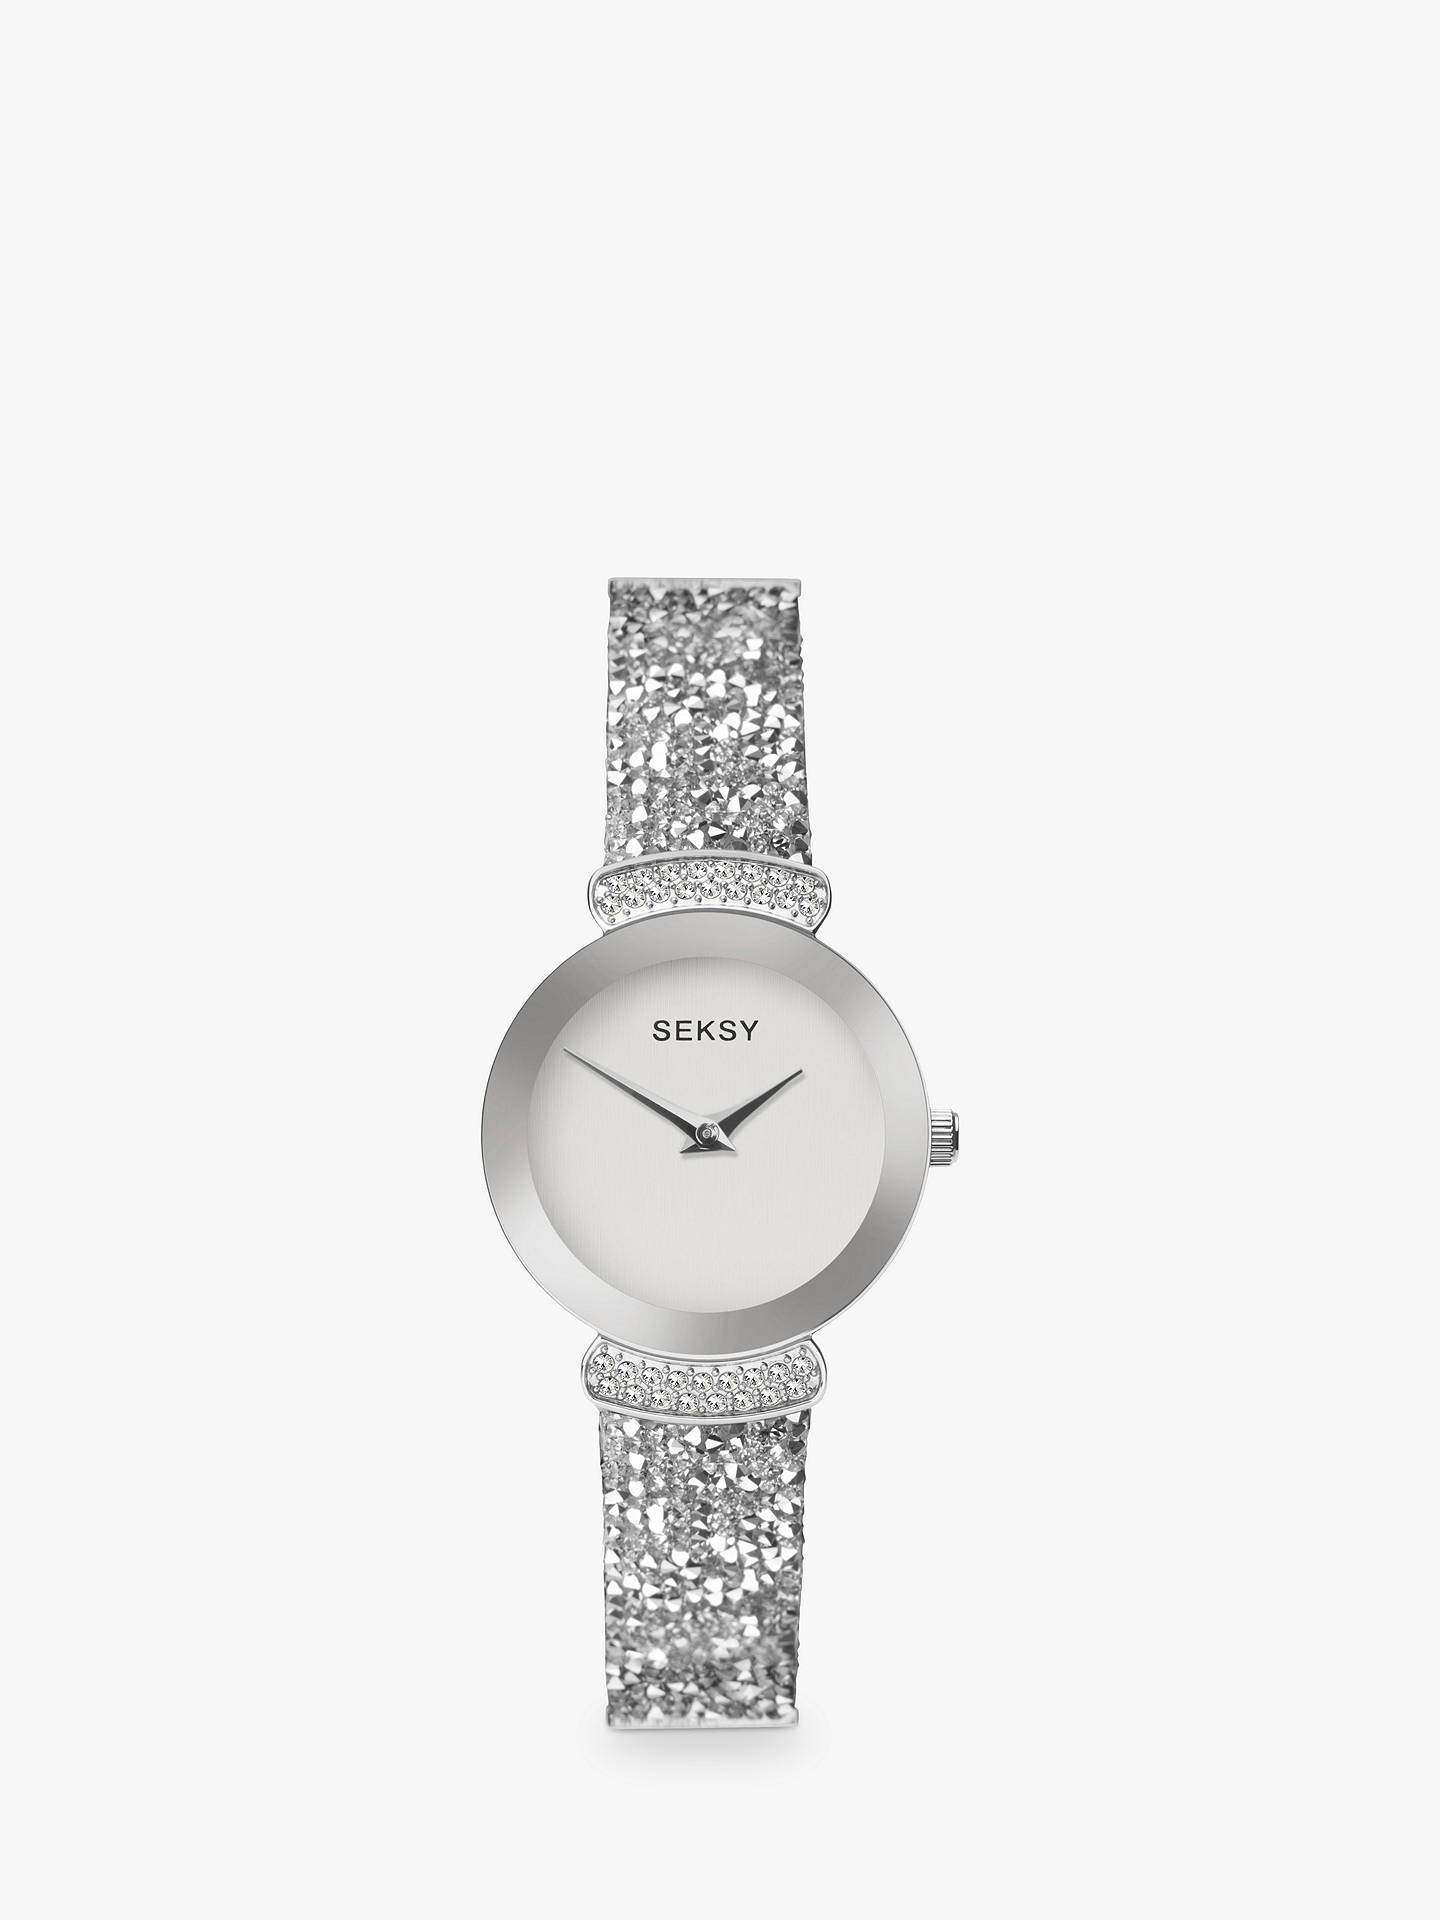 BuySekonda Women's Seksy Swarovski and Rock Crystal Leather Strap Watch, Silver/White 2721.37 Online at johnlewis.com